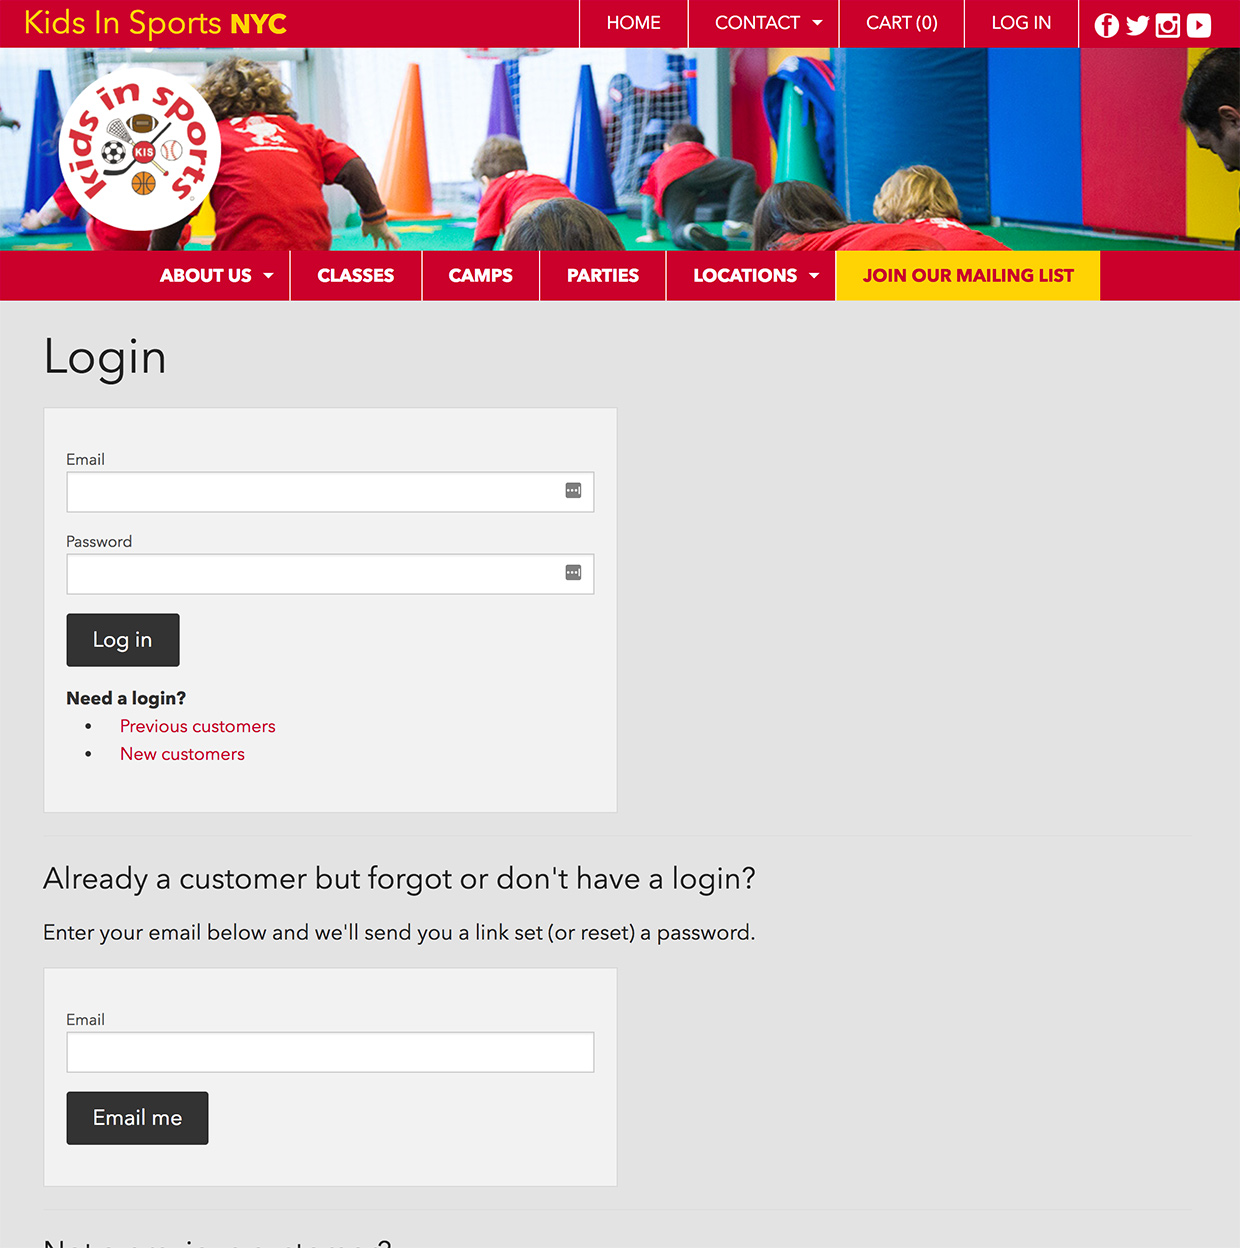 Kids In Sports: Kids in Sports Login Flow